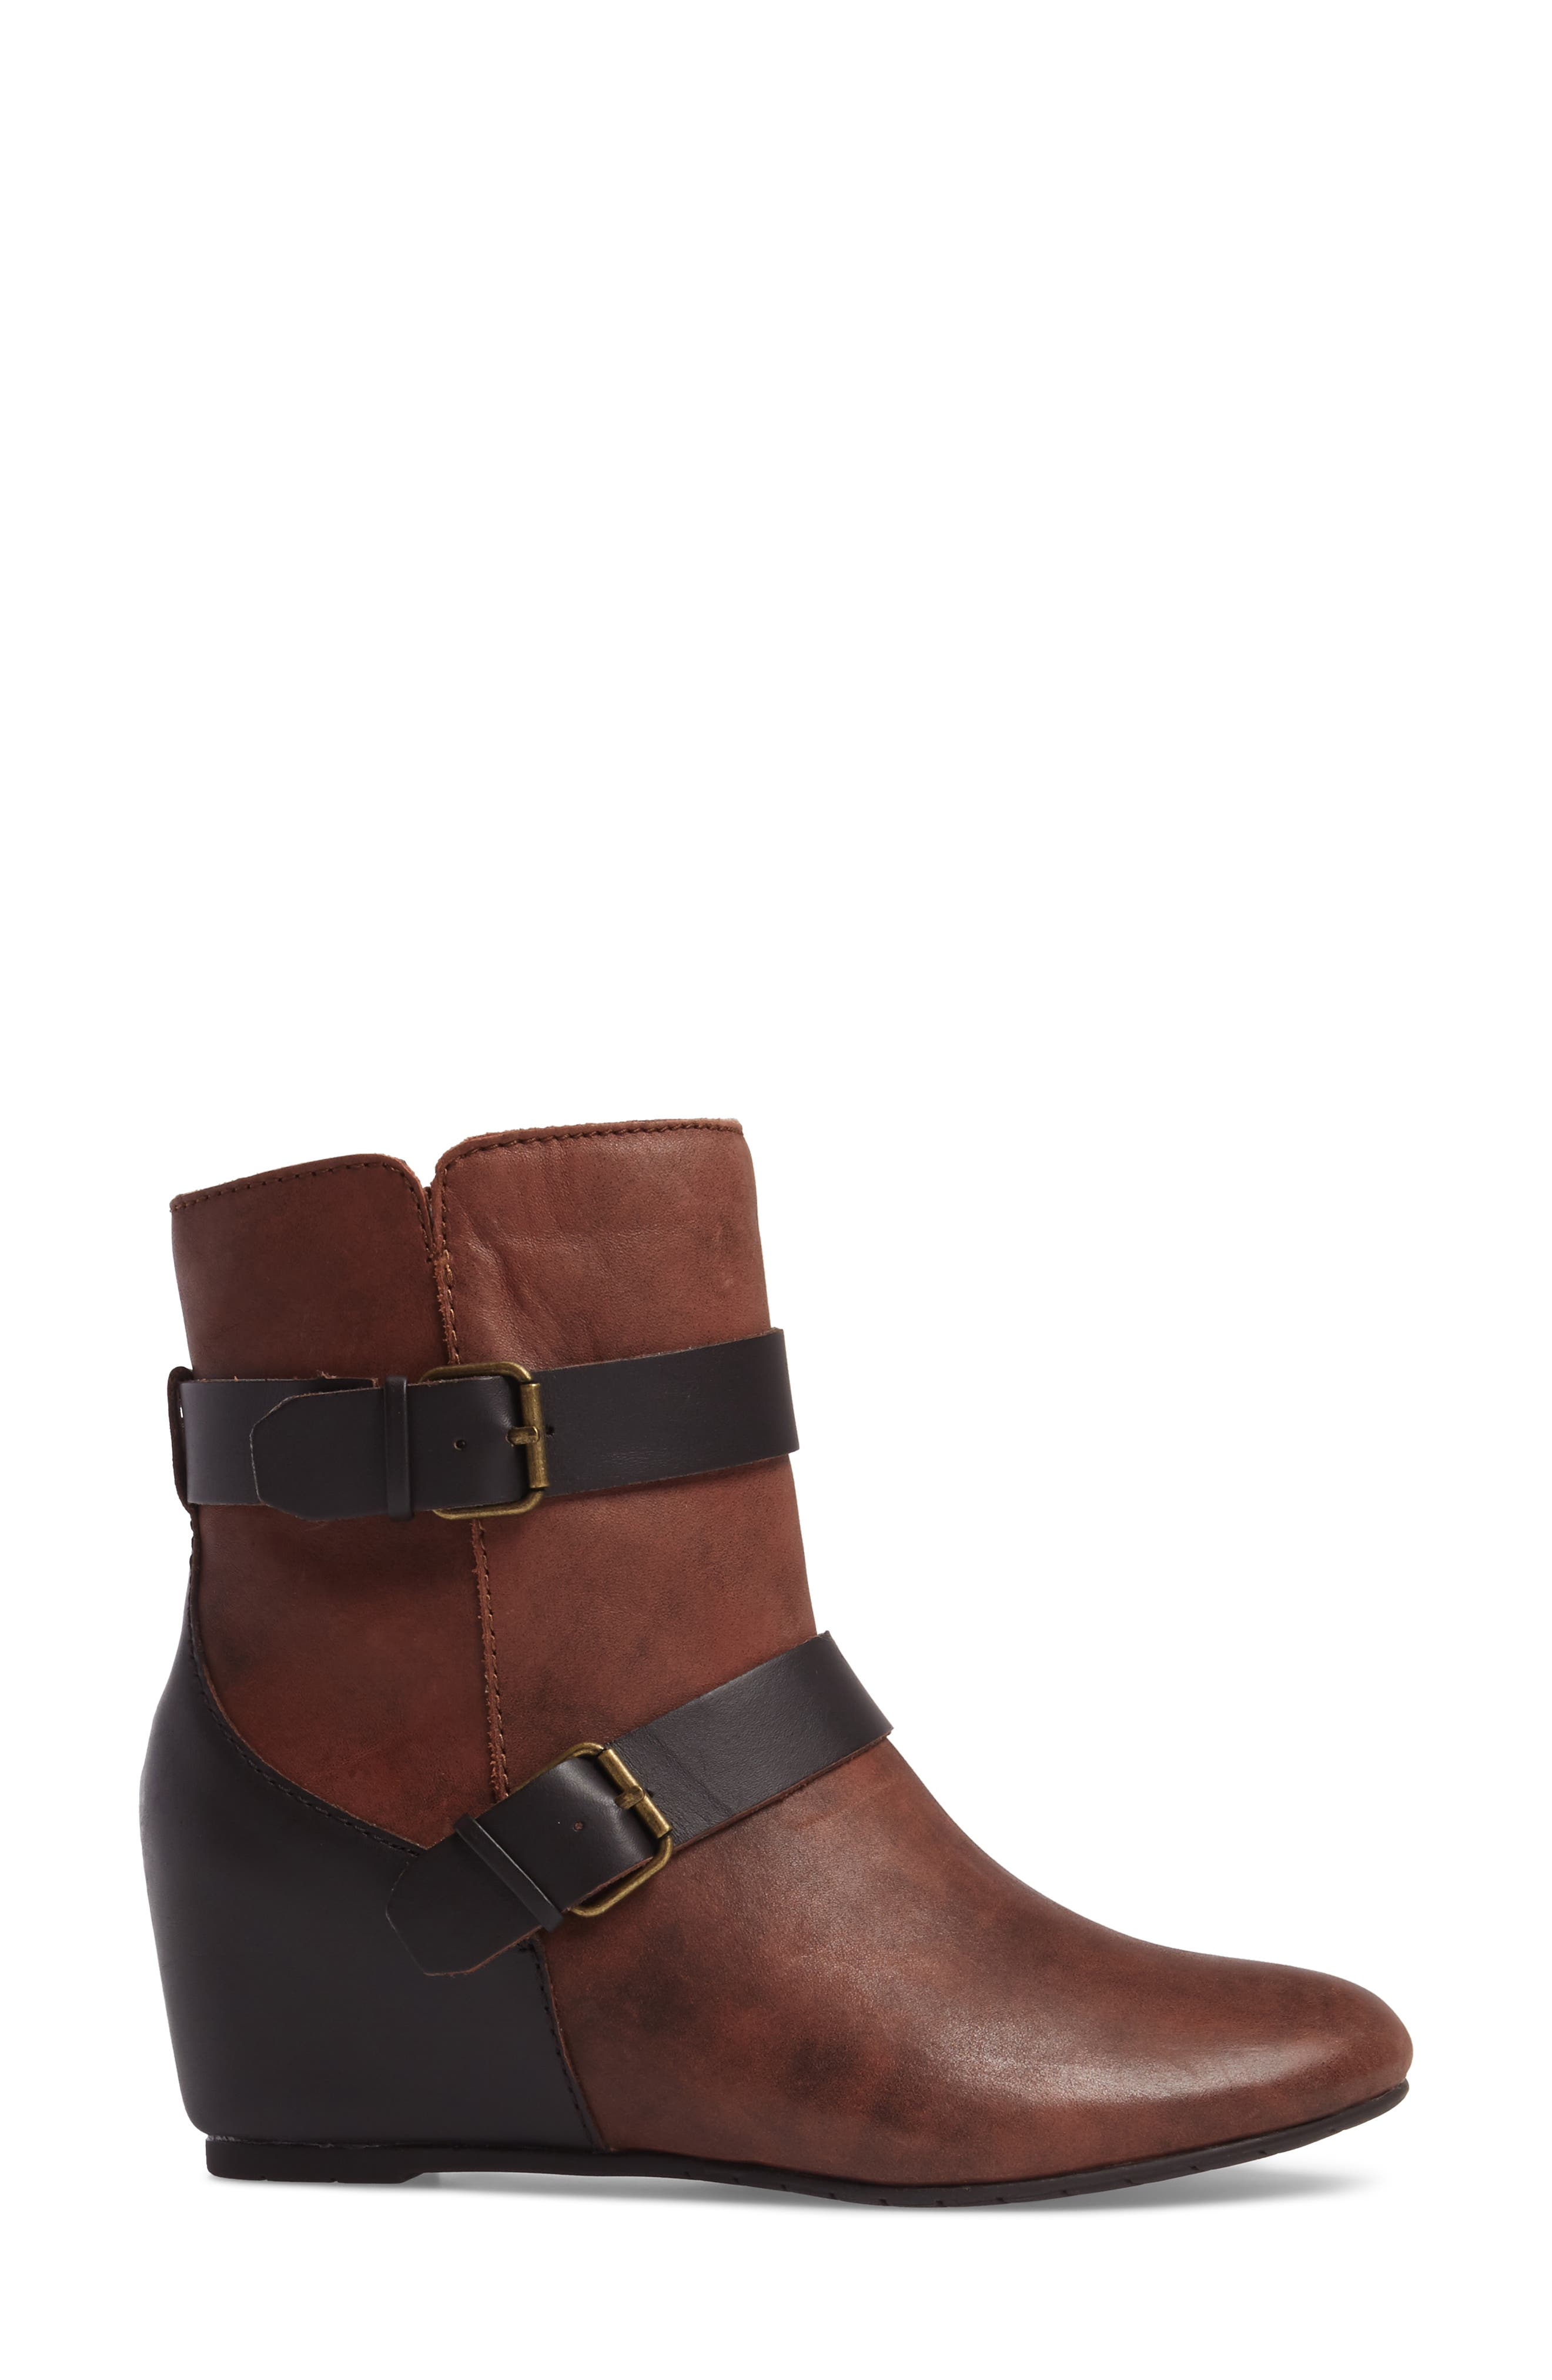 Ramika Wedge Bootie,                             Alternate thumbnail 9, color,